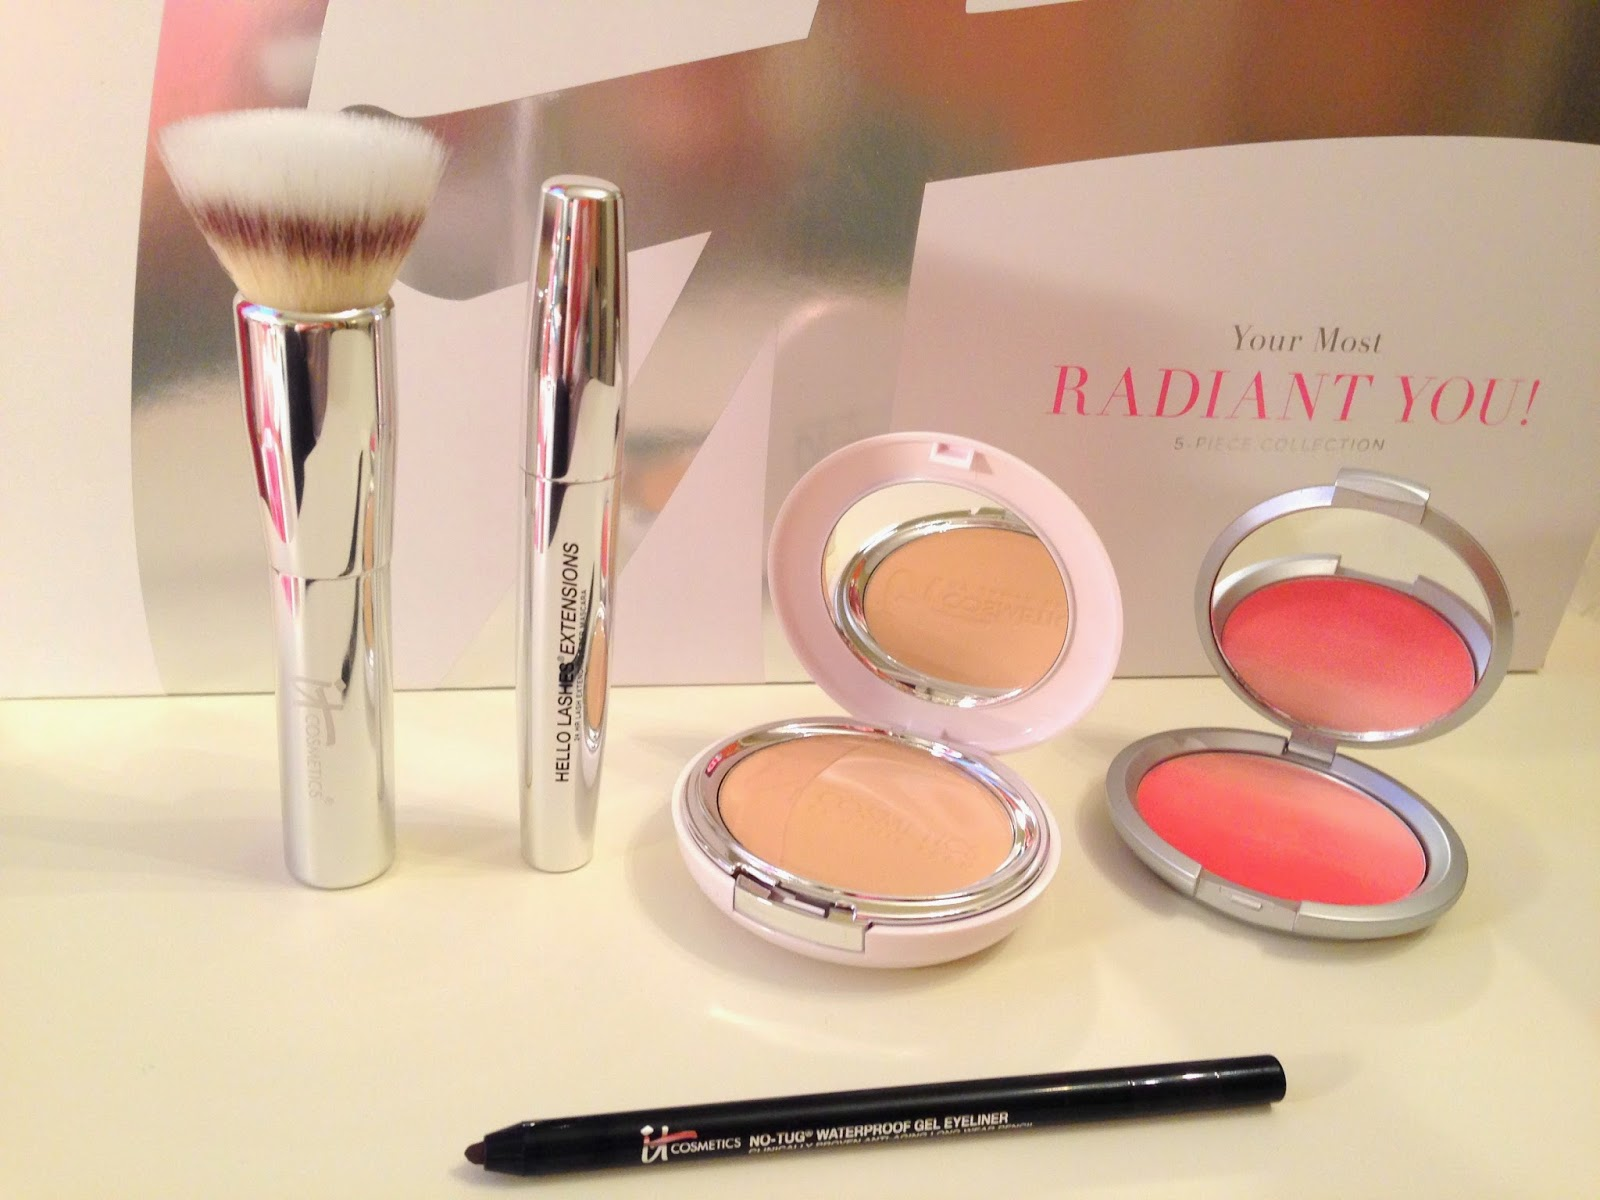 145b942d126 Well it's that time again! On Tuesday, October 14, 2014, QVC's Today Special  Value is none other than IT Cosmetics' Your Most Radiant You! Five Piece ...